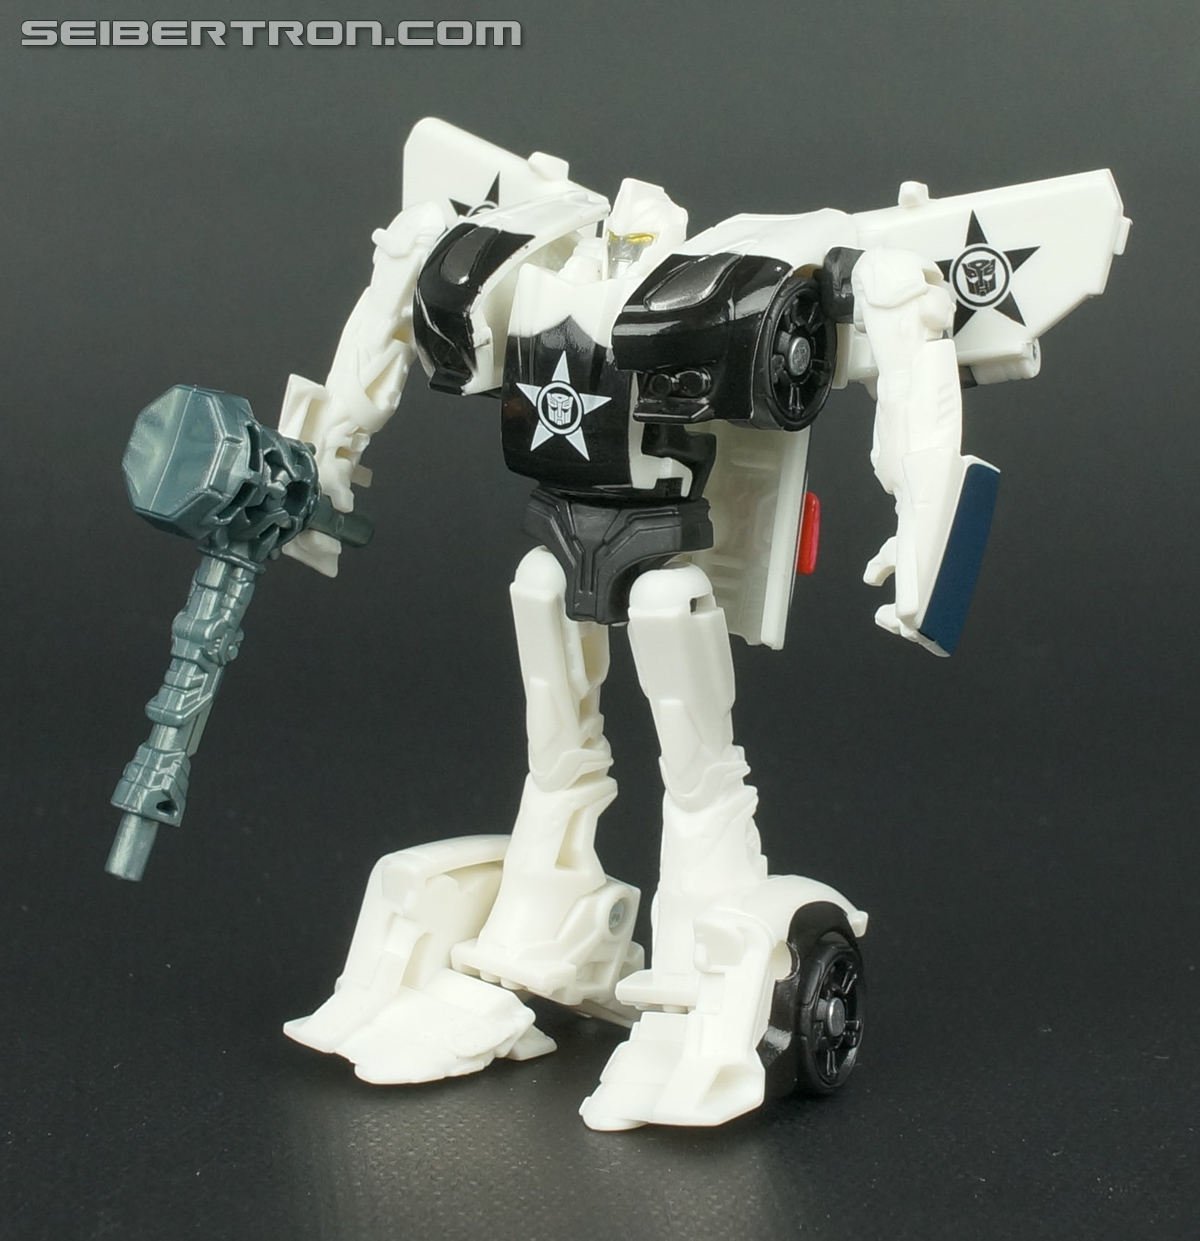 Transformers Prime Beast Hunters Cyberverse Prowl (Image #55 of 87)